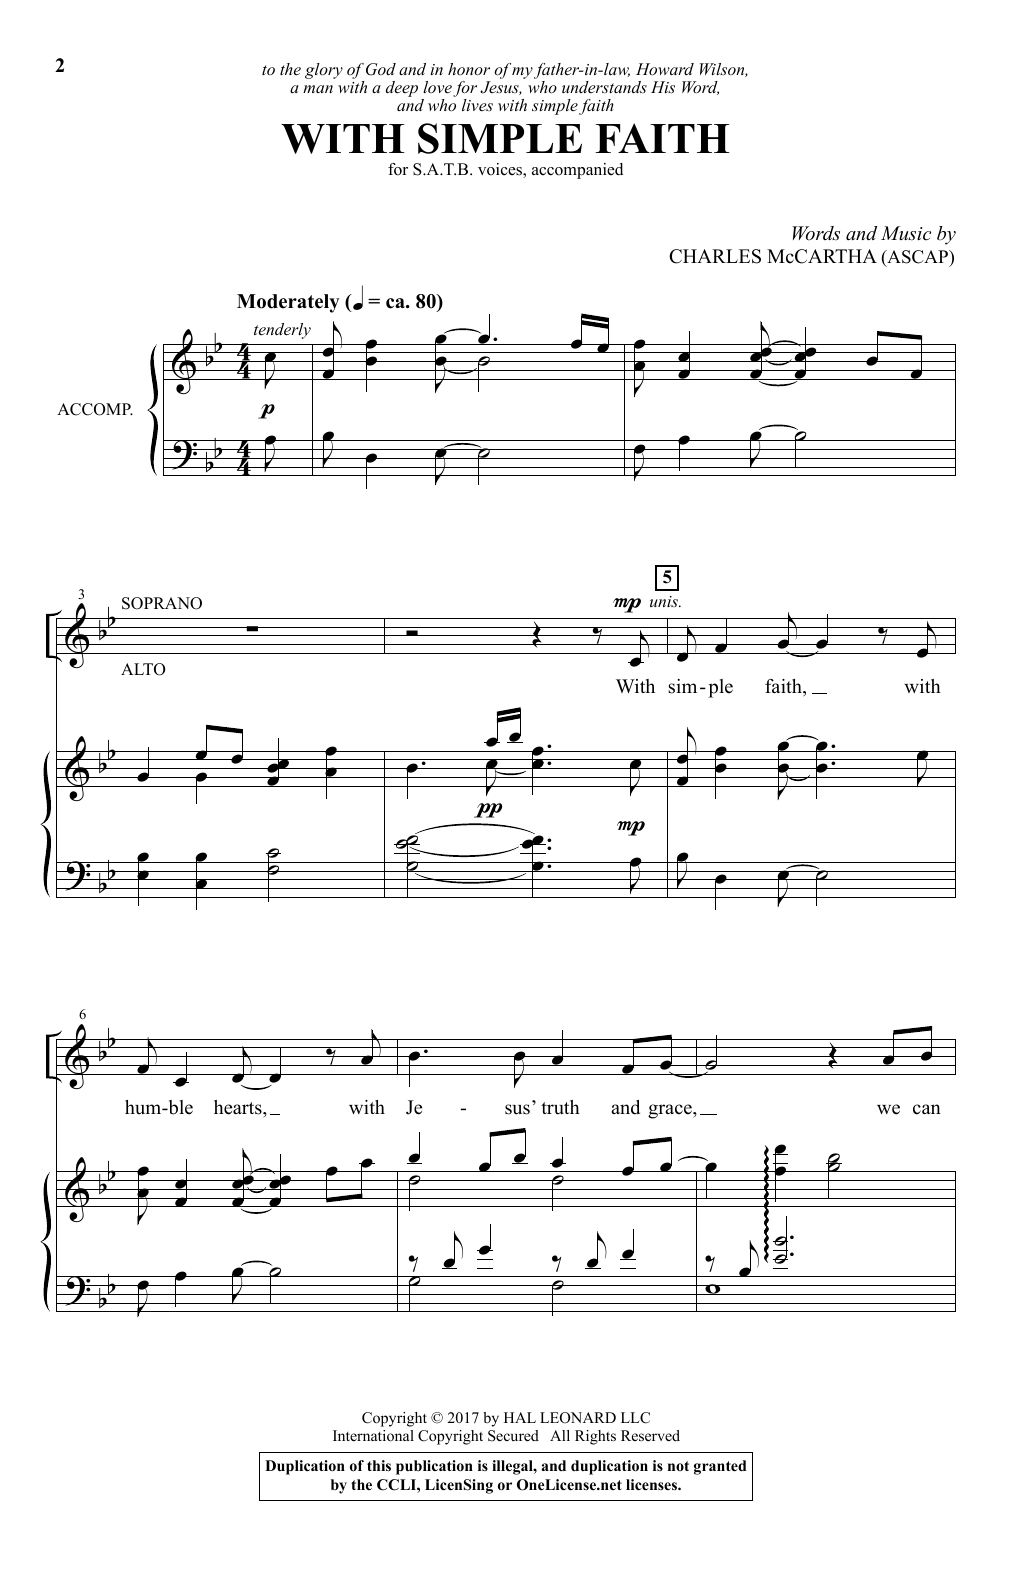 Charles McCartha With Simple Faith sheet music notes and chords. Download Printable PDF.